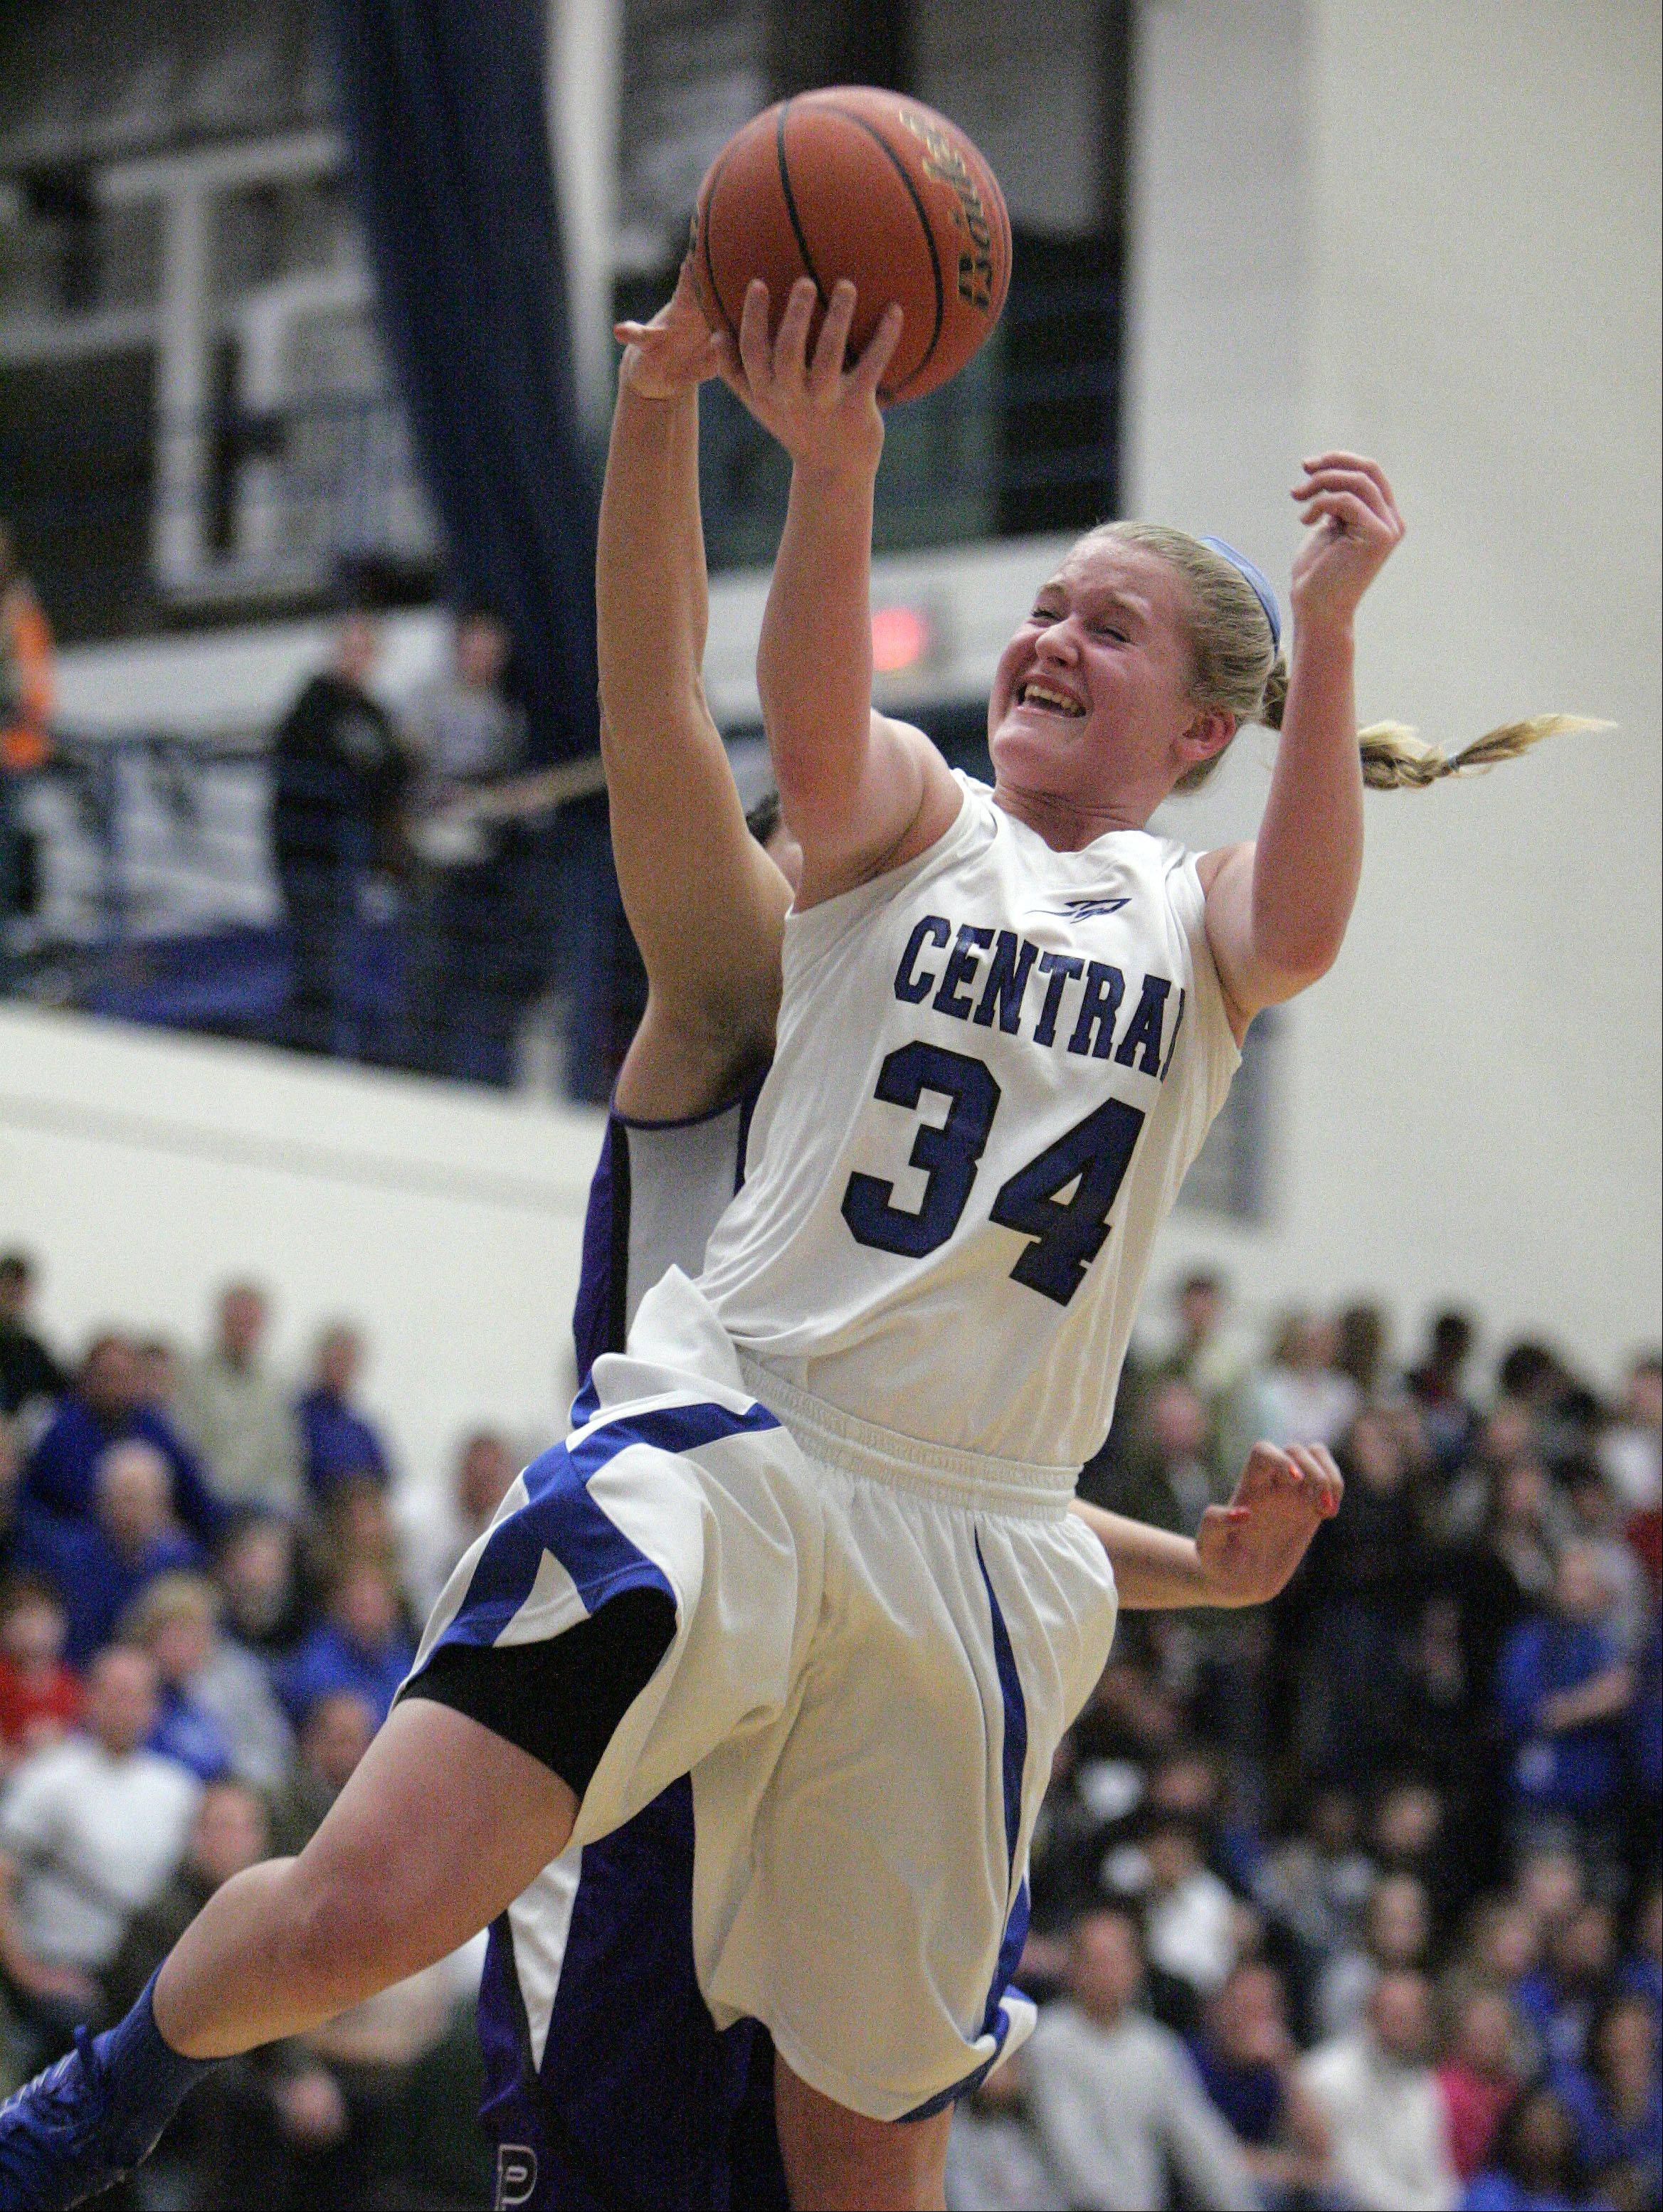 Burlington Central's Samantha Pryor (34) goes hard to the hoop during the second quarter of Burlington Central's 38-34 win over Plano for the Class 3A regional girls basketball championship Friday.